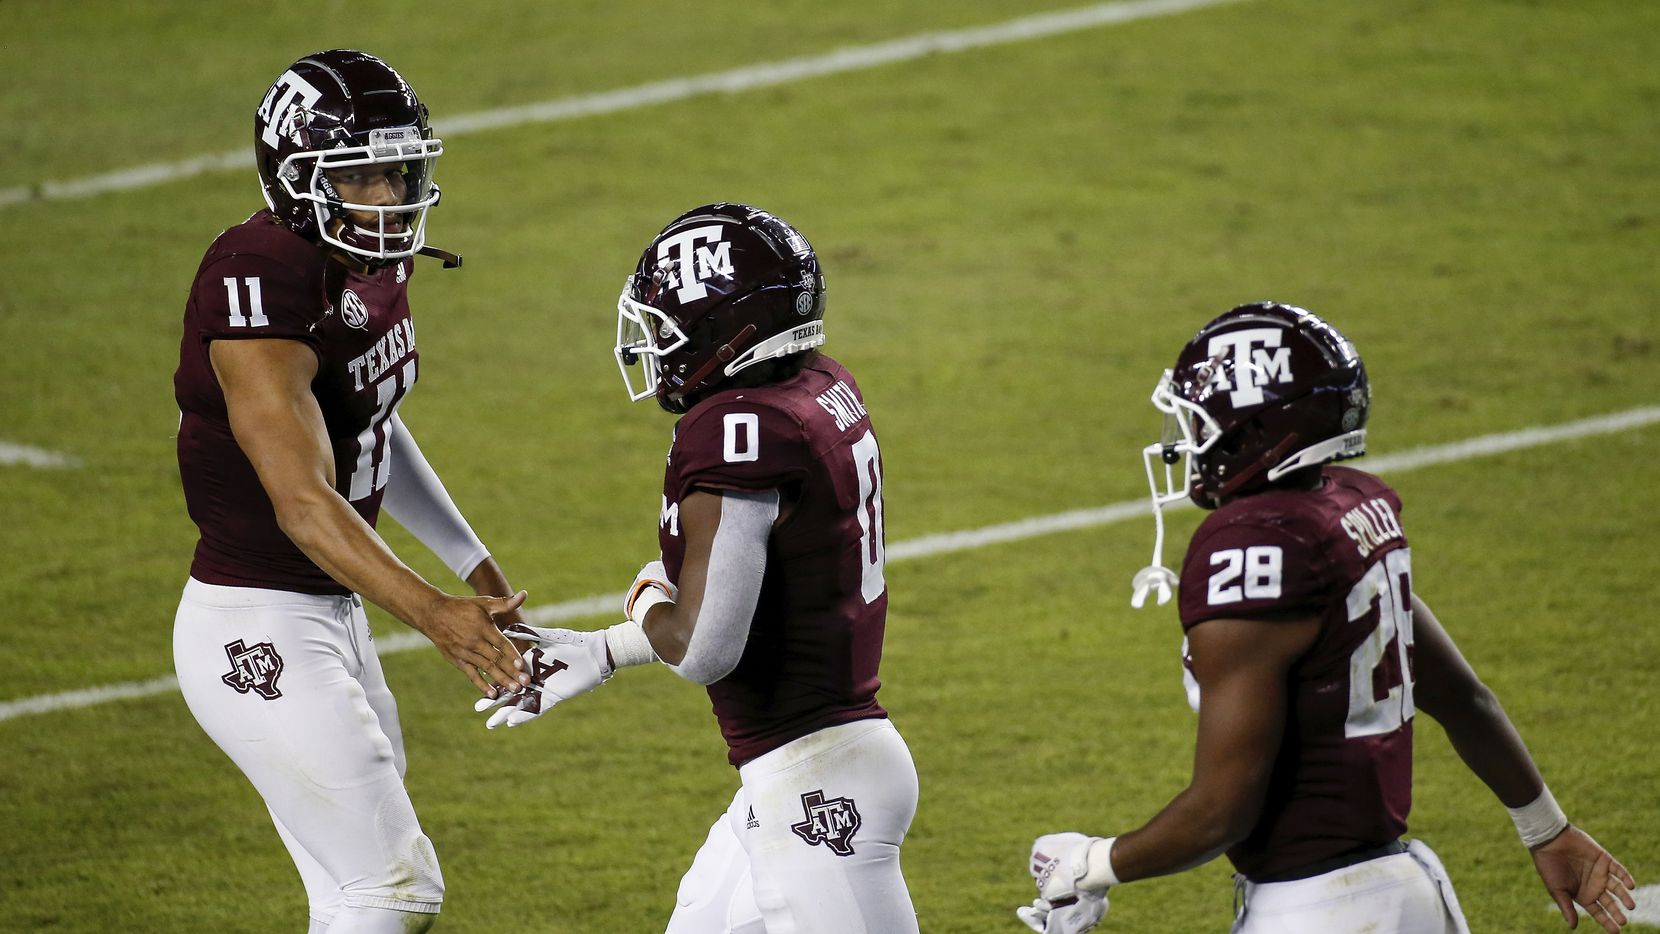 Texas A&M quarterback Kellen Mond (11) congratulates running back Ainias Smith (0) after a touchdown in the first quarter against Arkansas at Kyle Field on Oct. 31, 2020, in College Station.